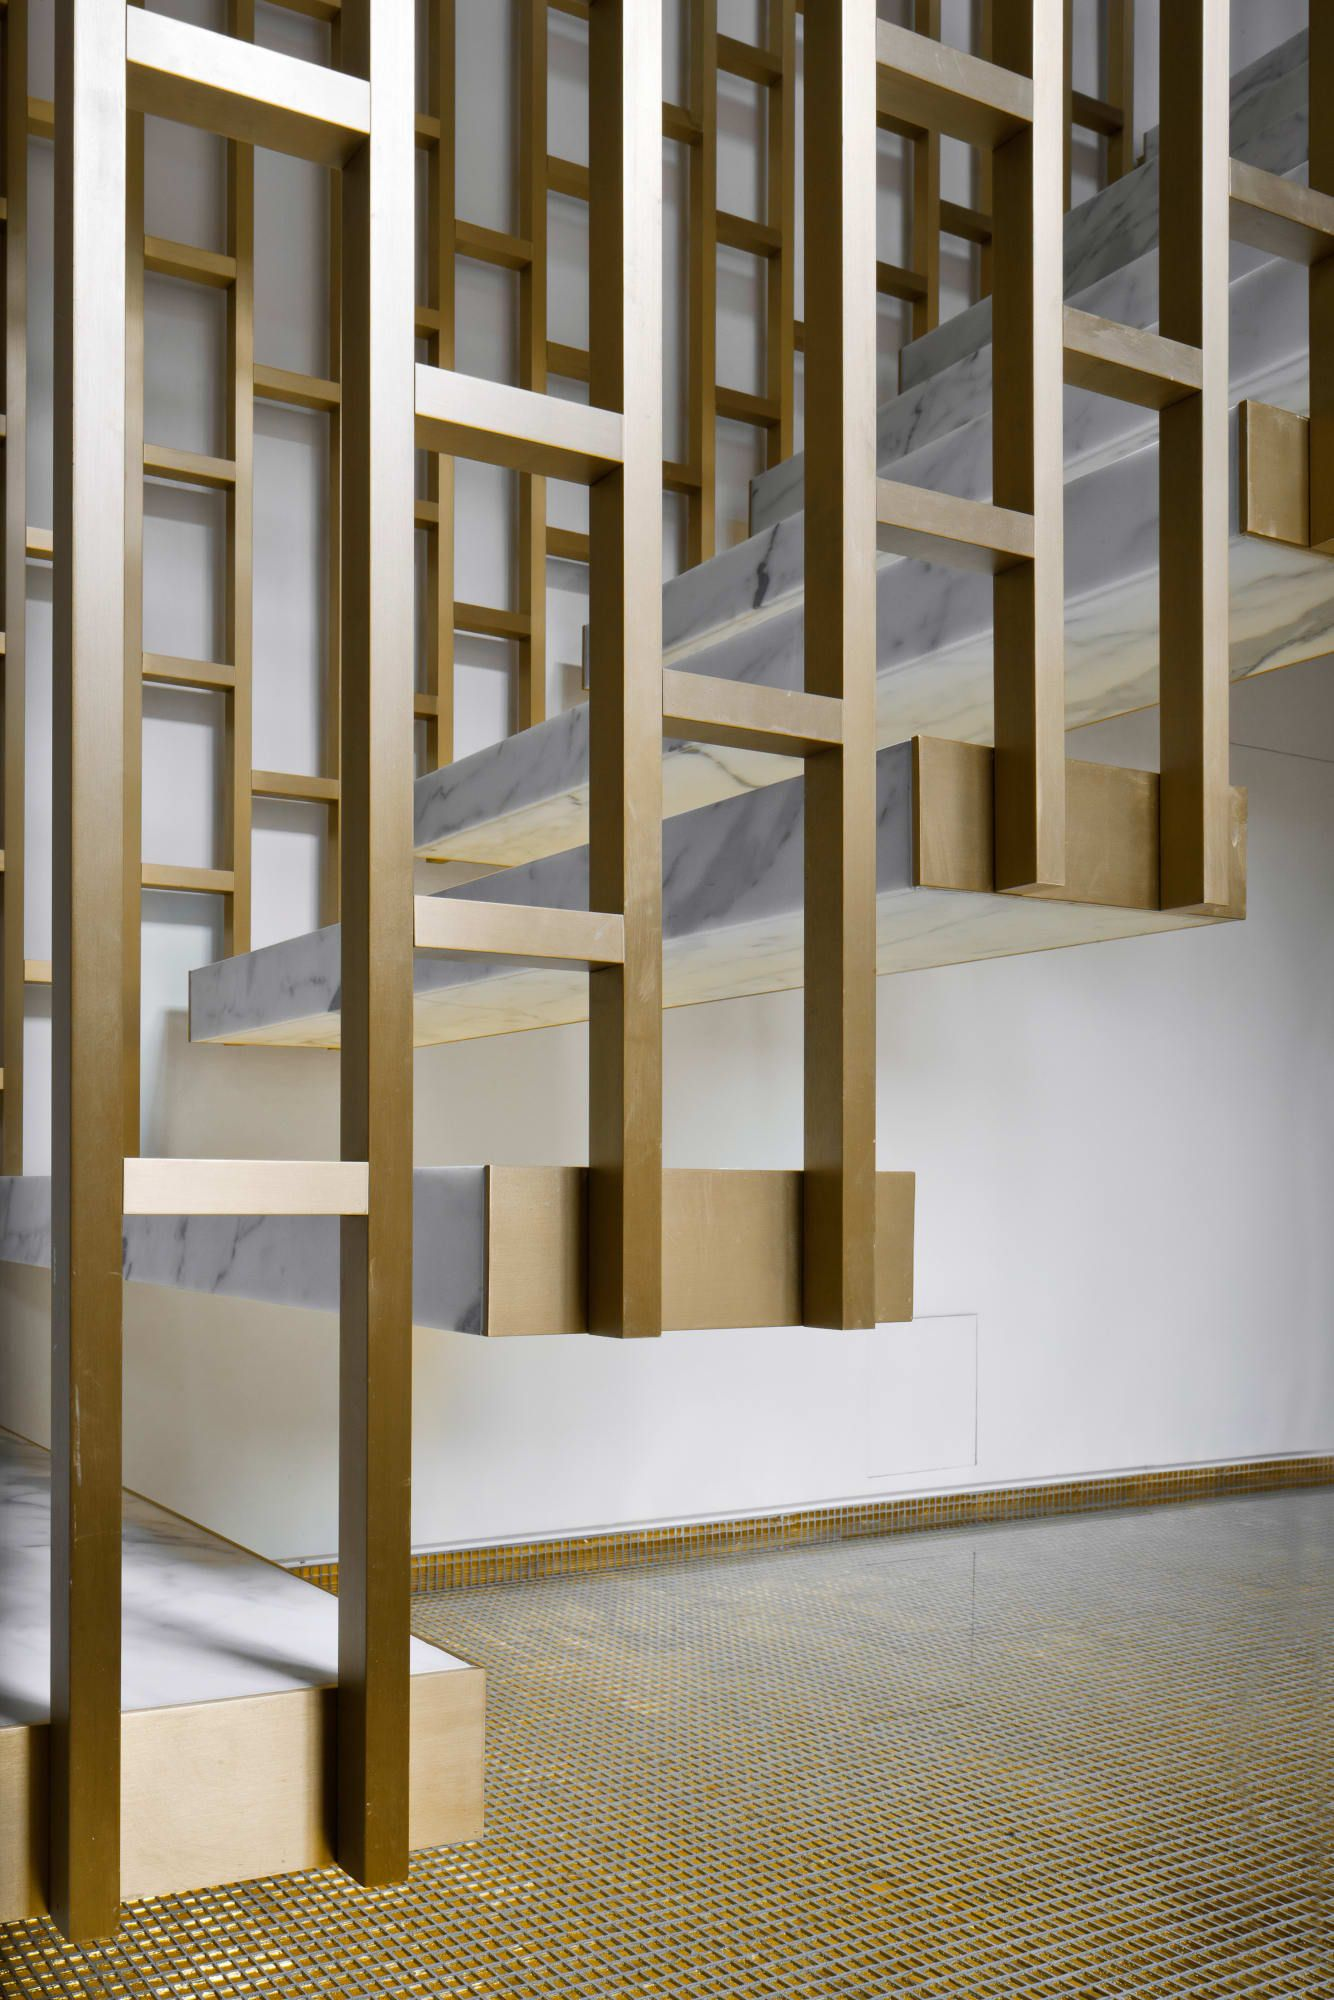 Labics alessandra chemollo d apartment detail - Interior stair railing contractors ...